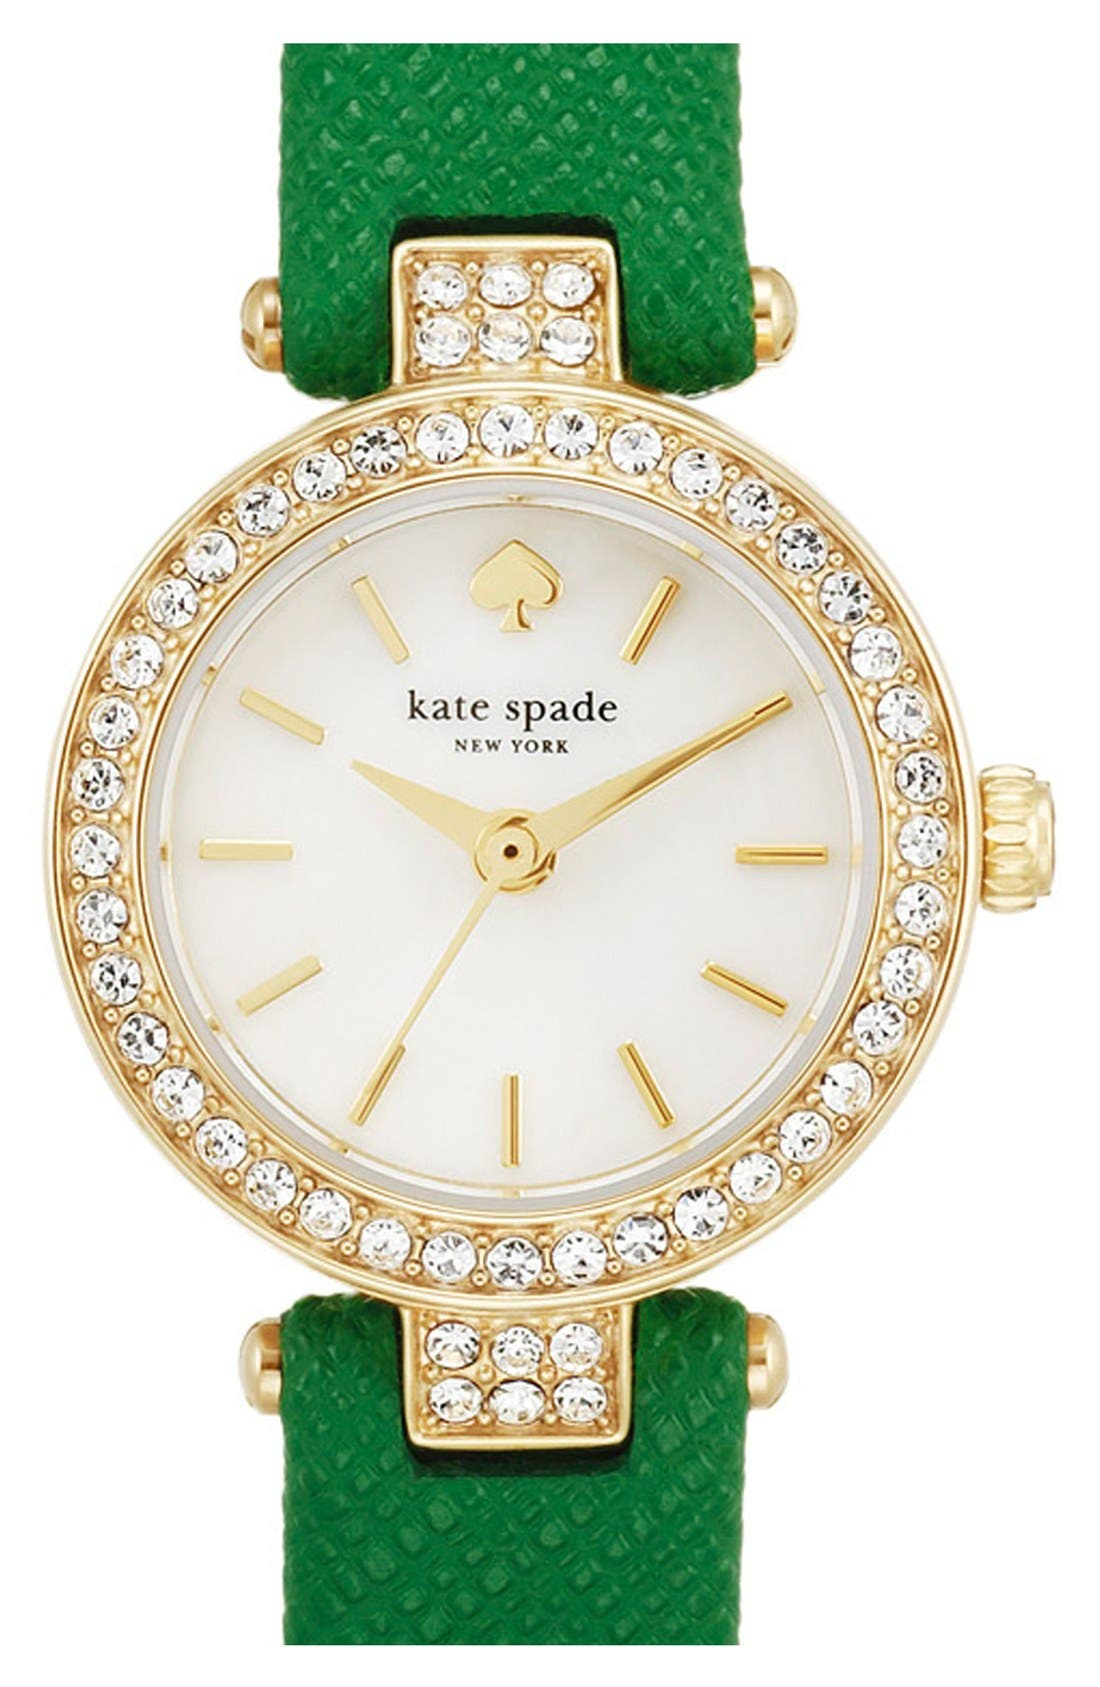 Main Image - kate spade new york 'tiny metro' crystal bezel leather strap watch, 20mm